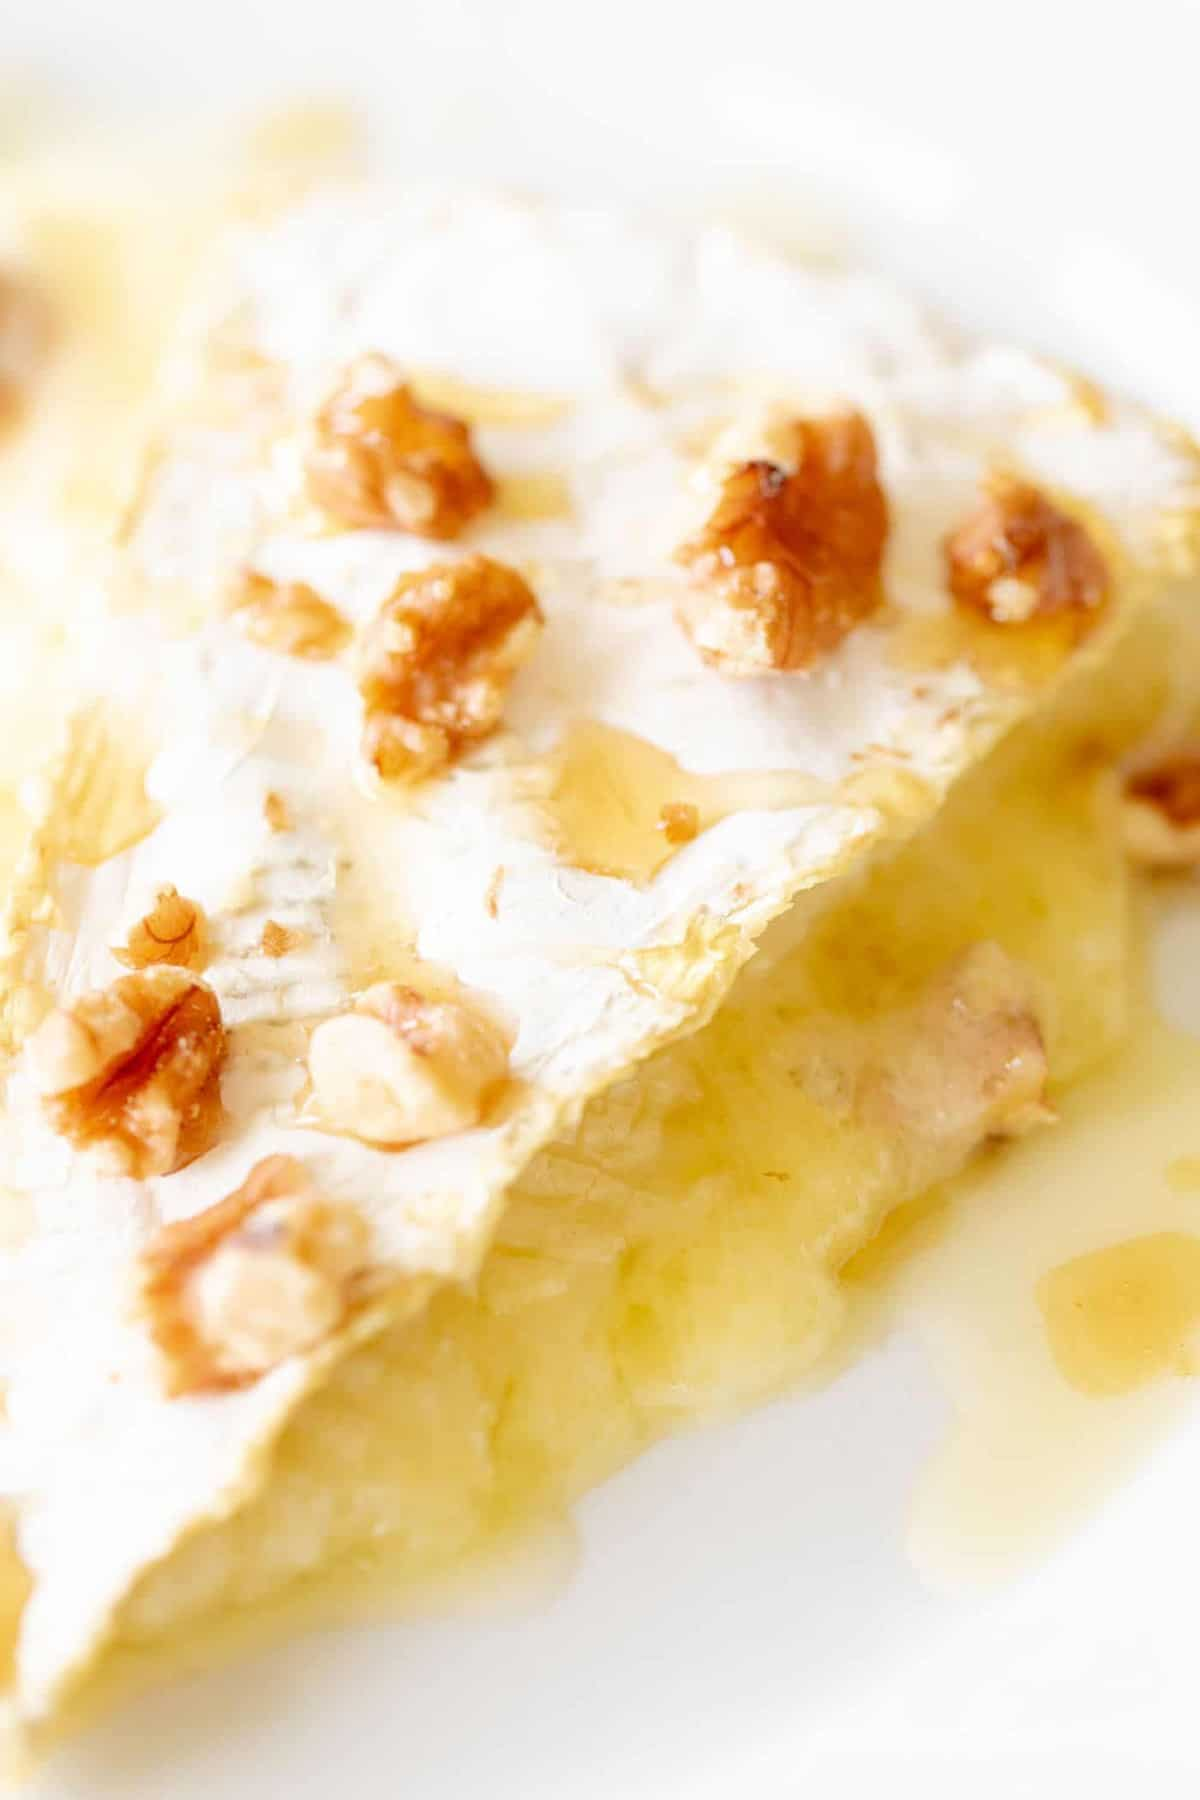 A slice of melted brie covered in honey and pecans.